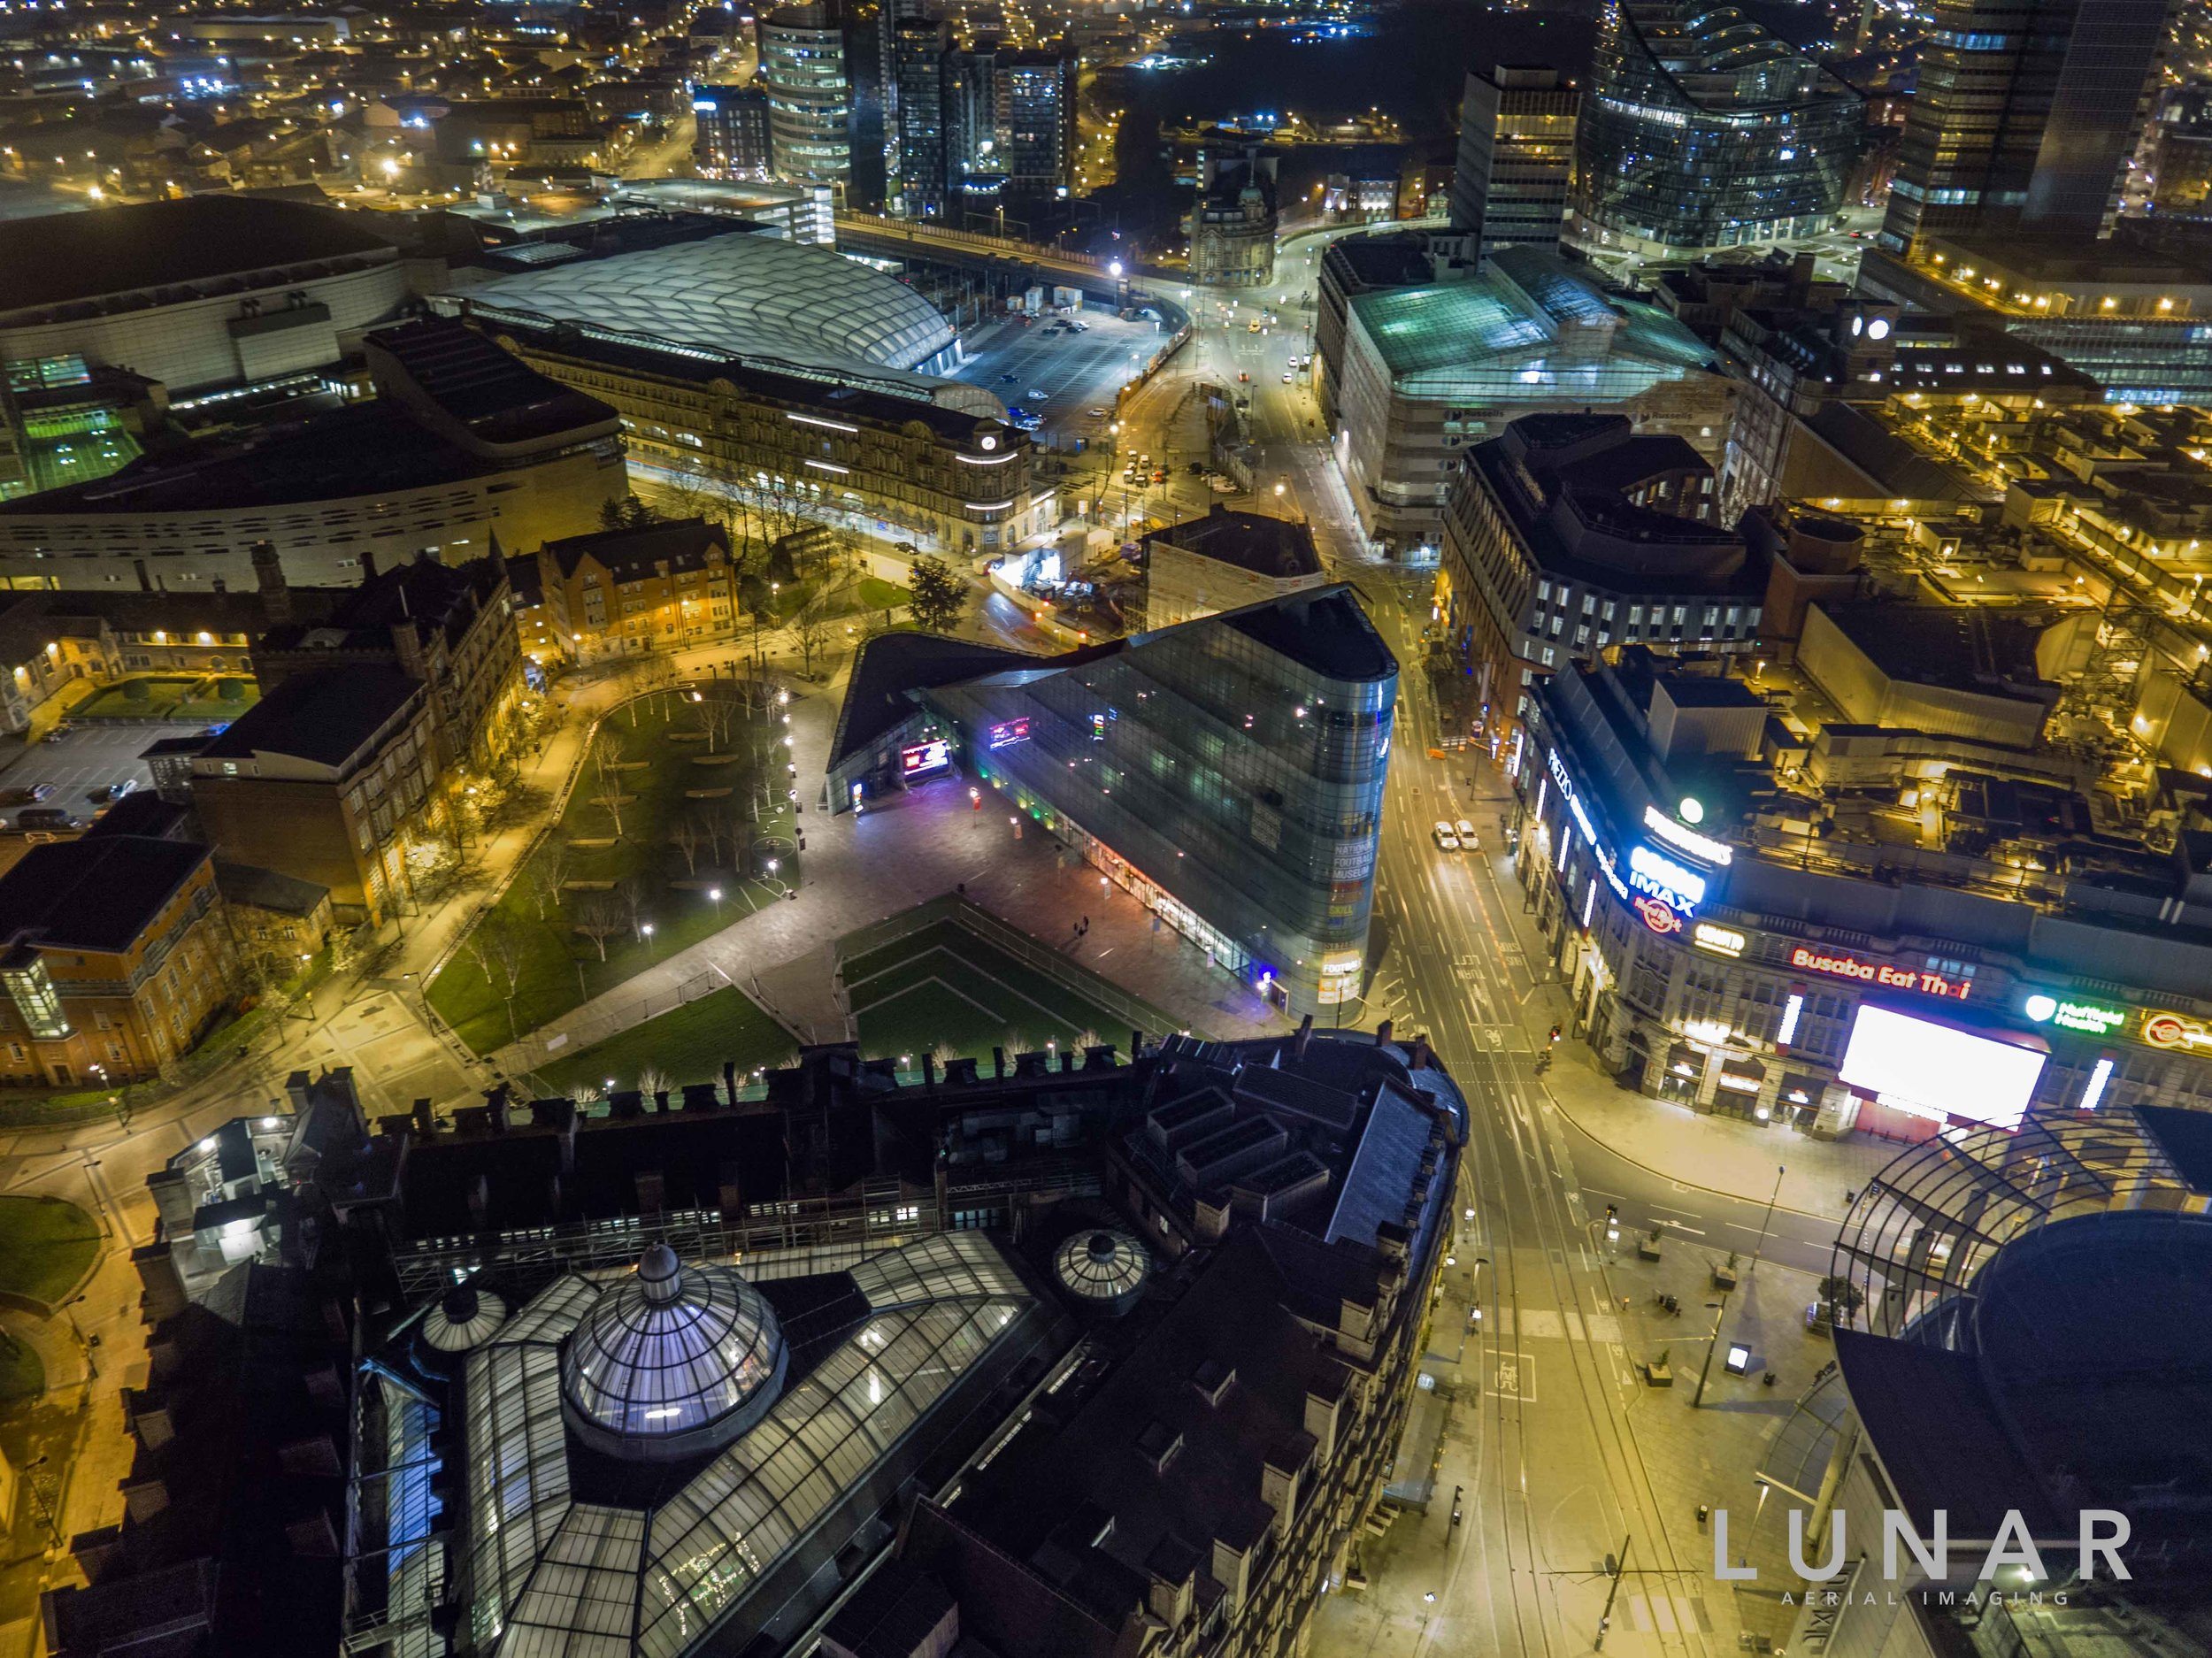 Nigh aerial view of Manchester Corn Exchange, Exchange Square